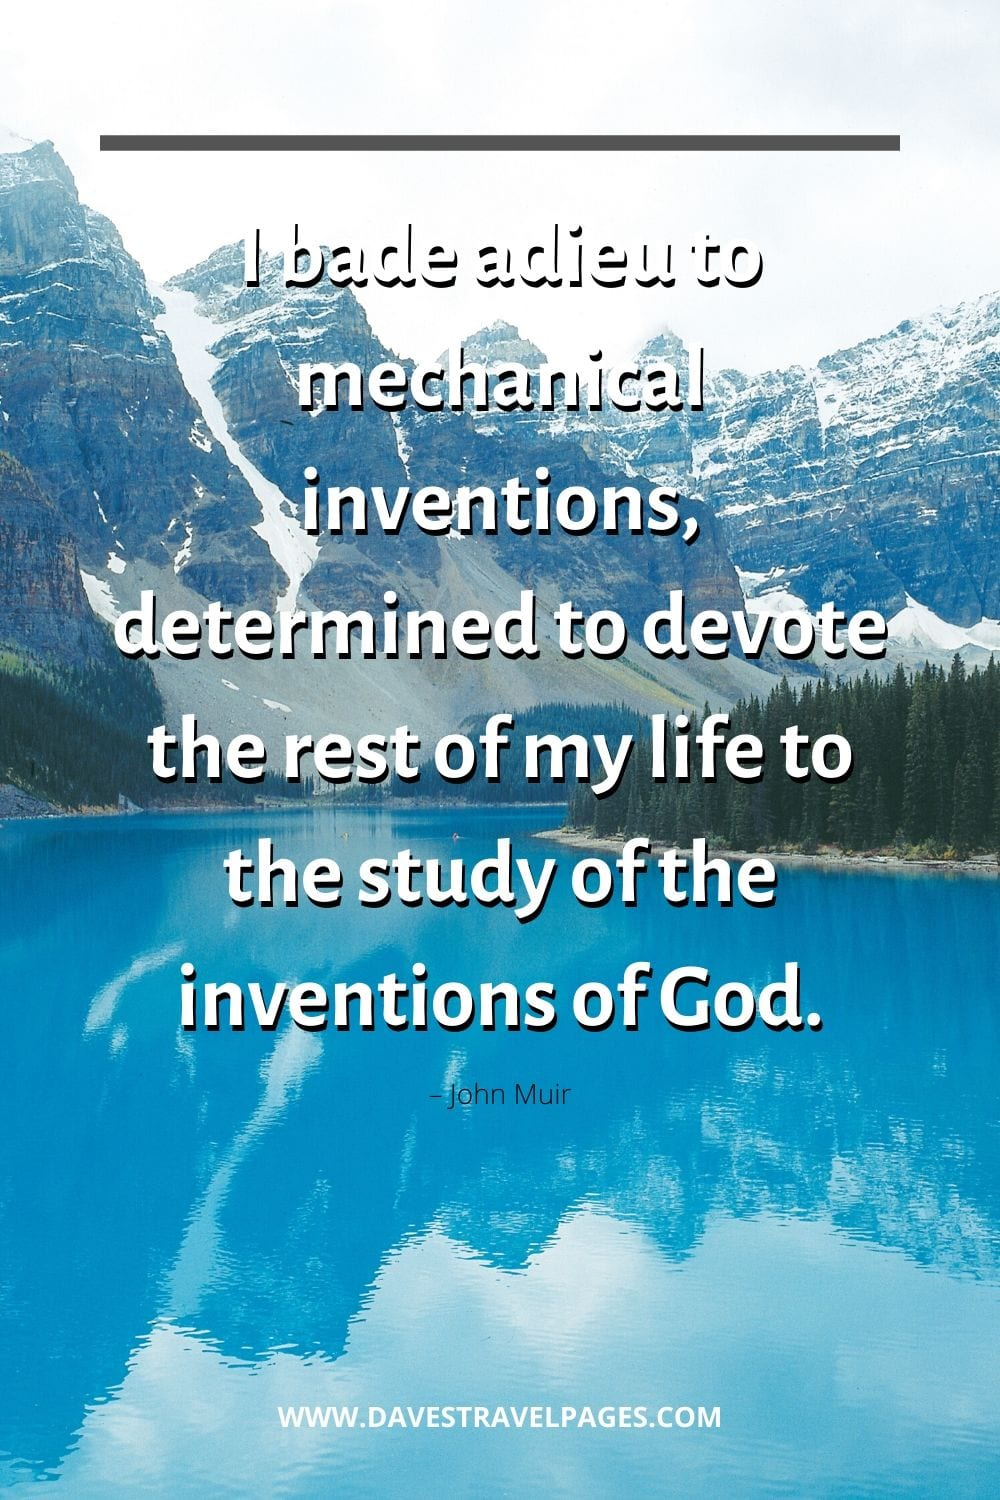 """John Muir: """"I bade adieu to mechanical inventions, determined to devote the rest of my life to the study of the inventions of God."""""""